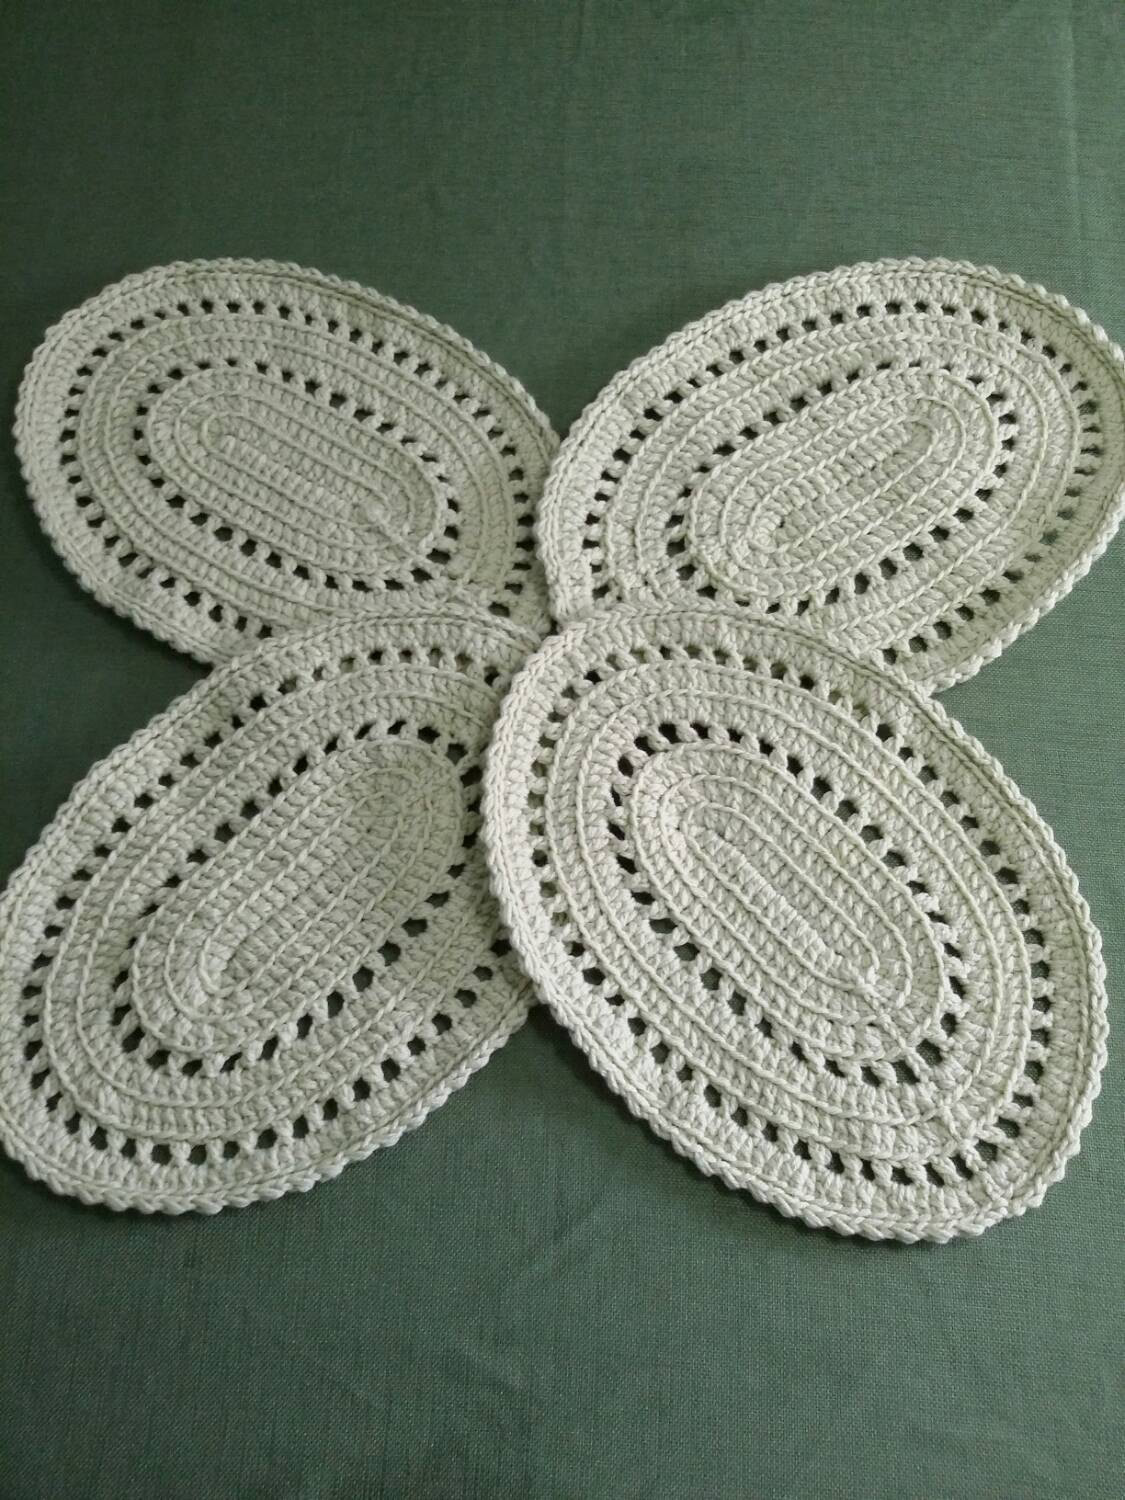 New Oval Crocheted Placemats Crochet Placemat Of Top 40 Pics Crochet Placemat